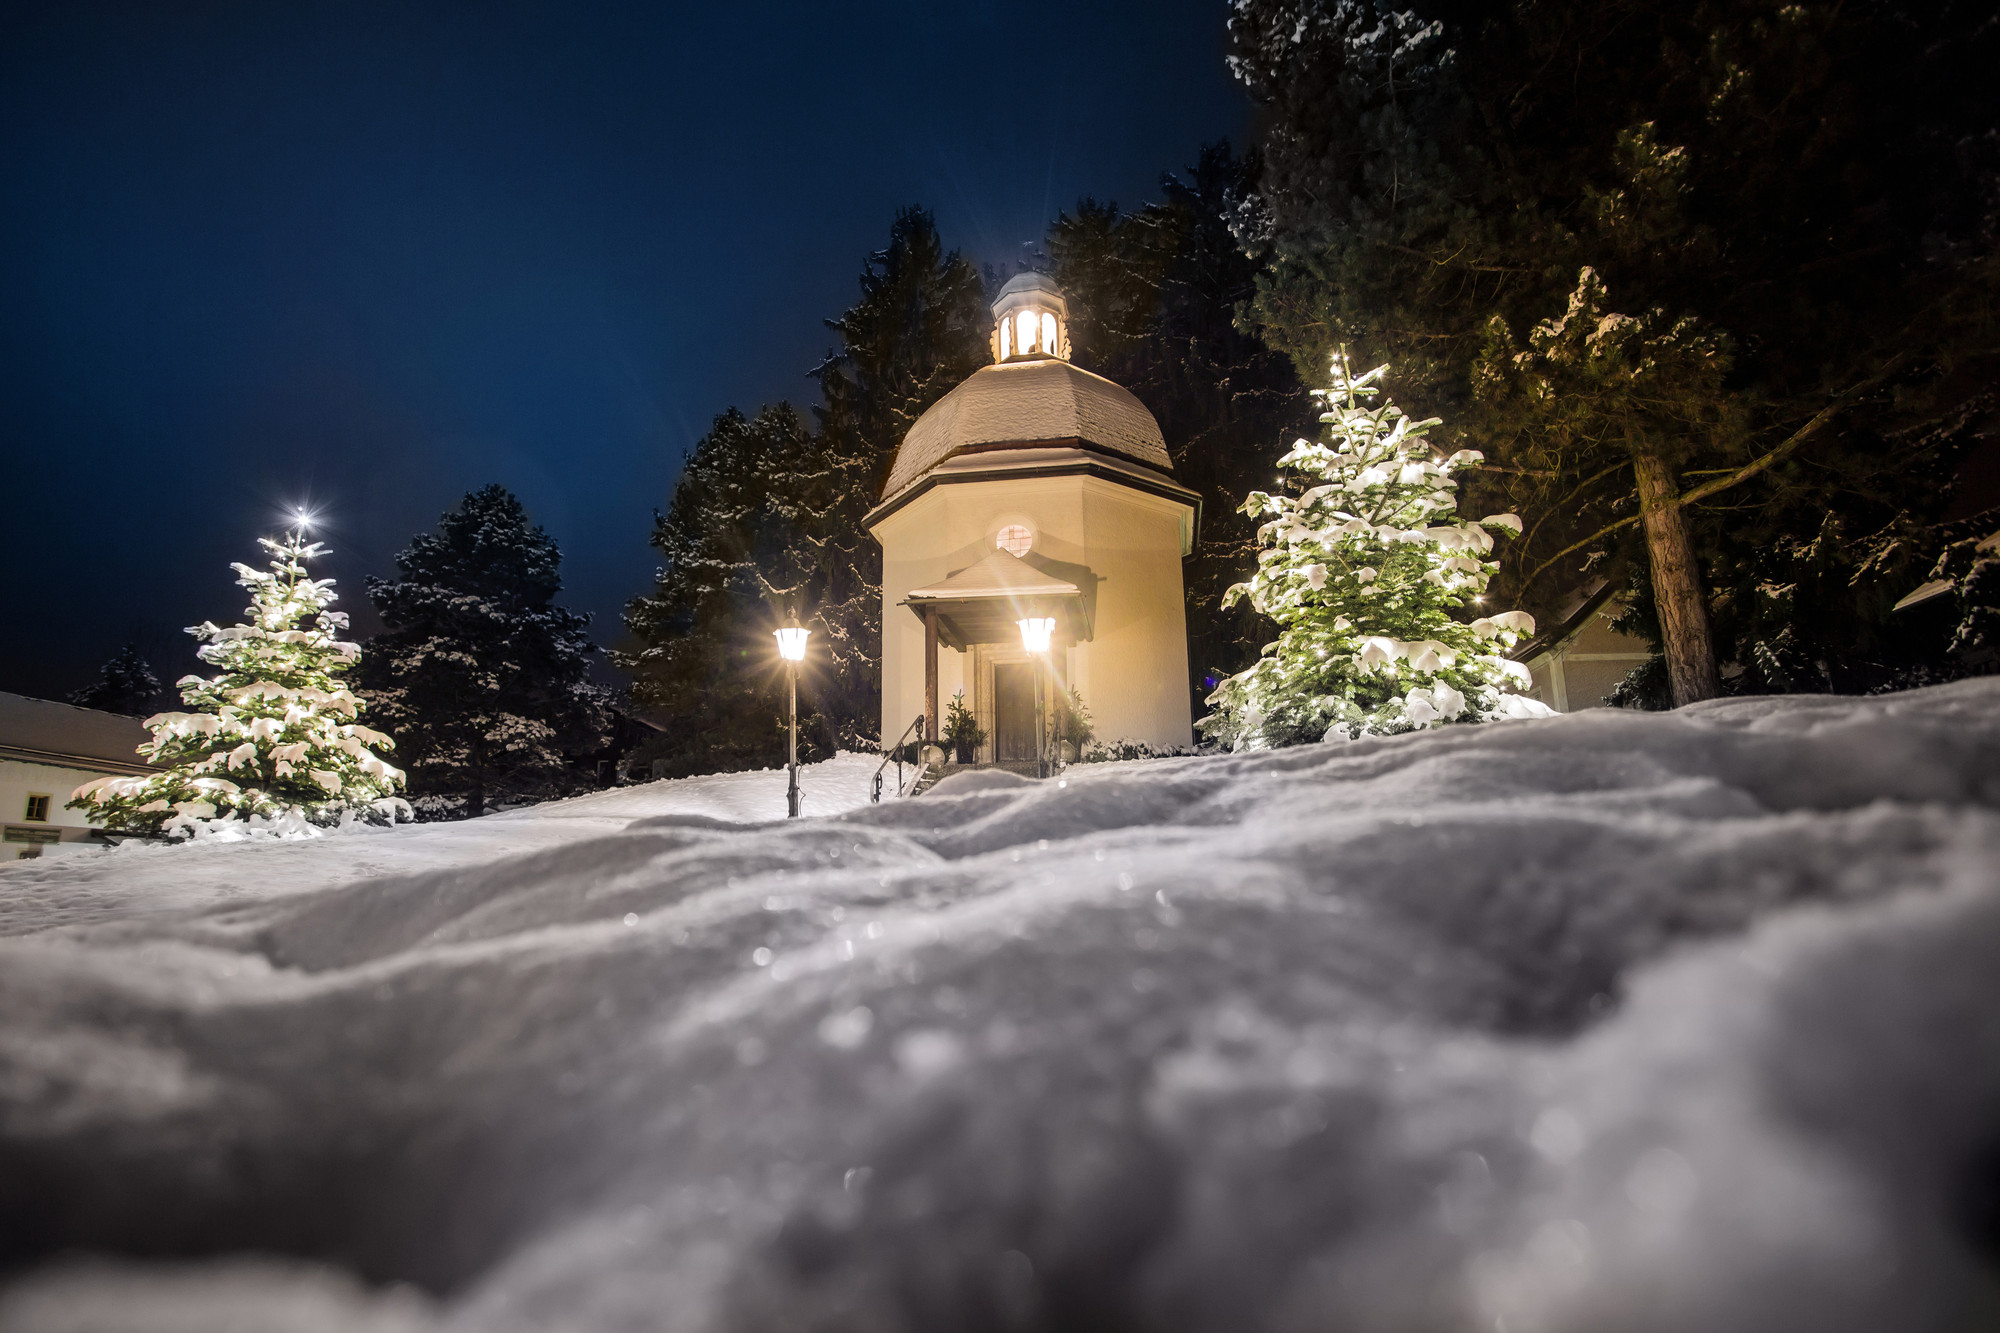 Silent-Night-Chapel (Stille-Nacht-Kapelle) located in Oberndorf bei Salzburg, Austria,where the song was first performed.